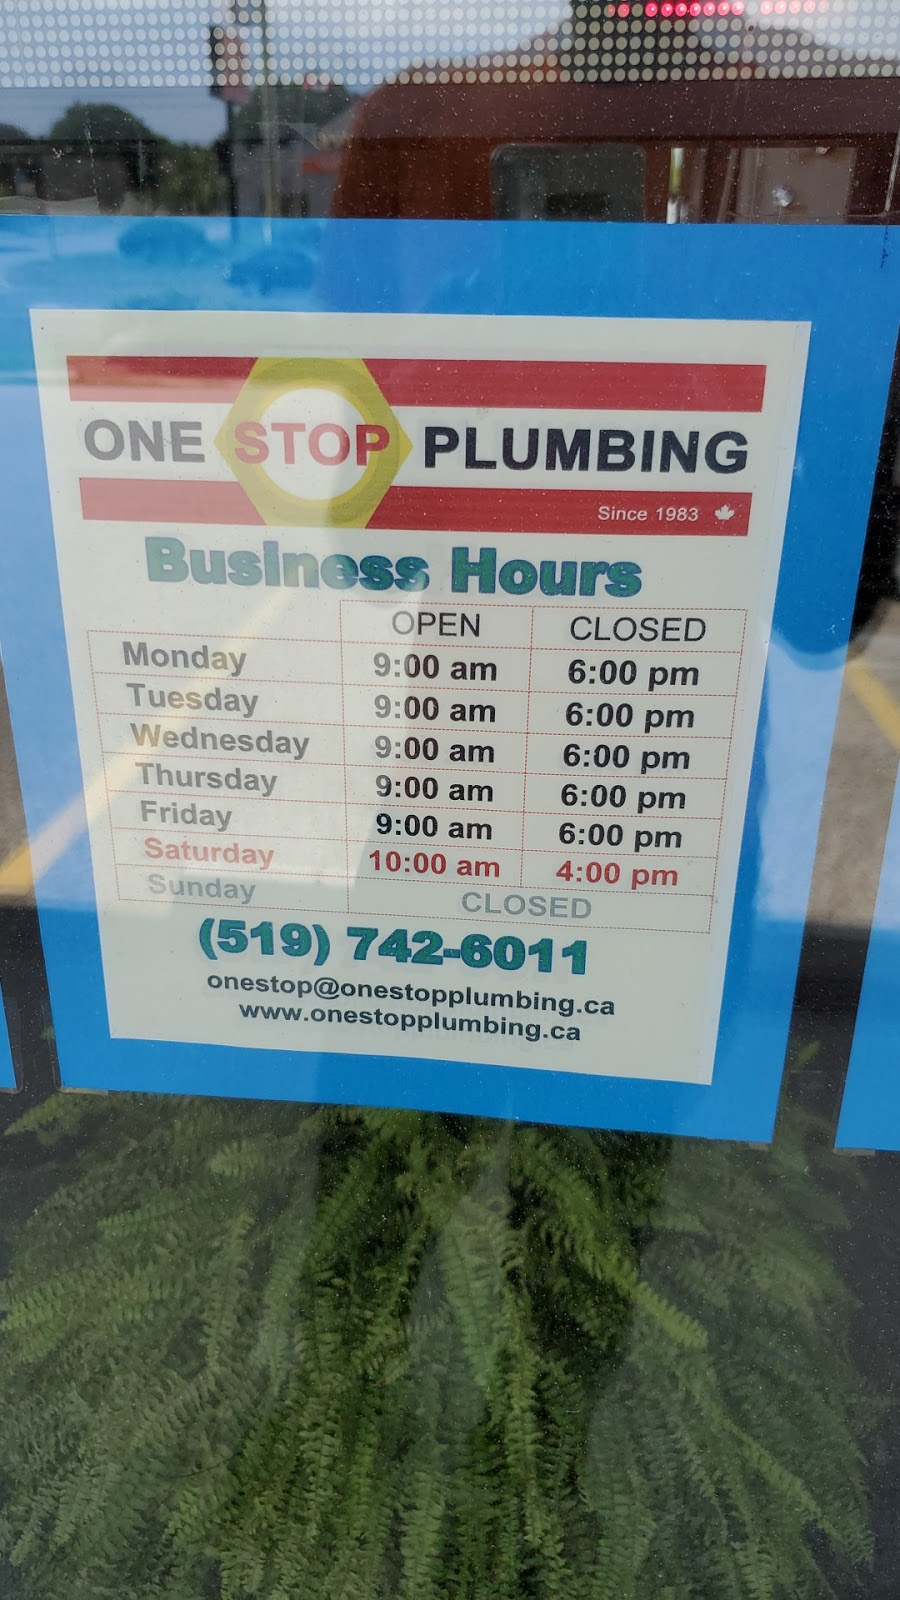 One Stop Plumbing   home goods store   842 Victoria St N #2, Kitchener, ON N2B 3C3, Canada   5197426011 OR +1 519-742-6011